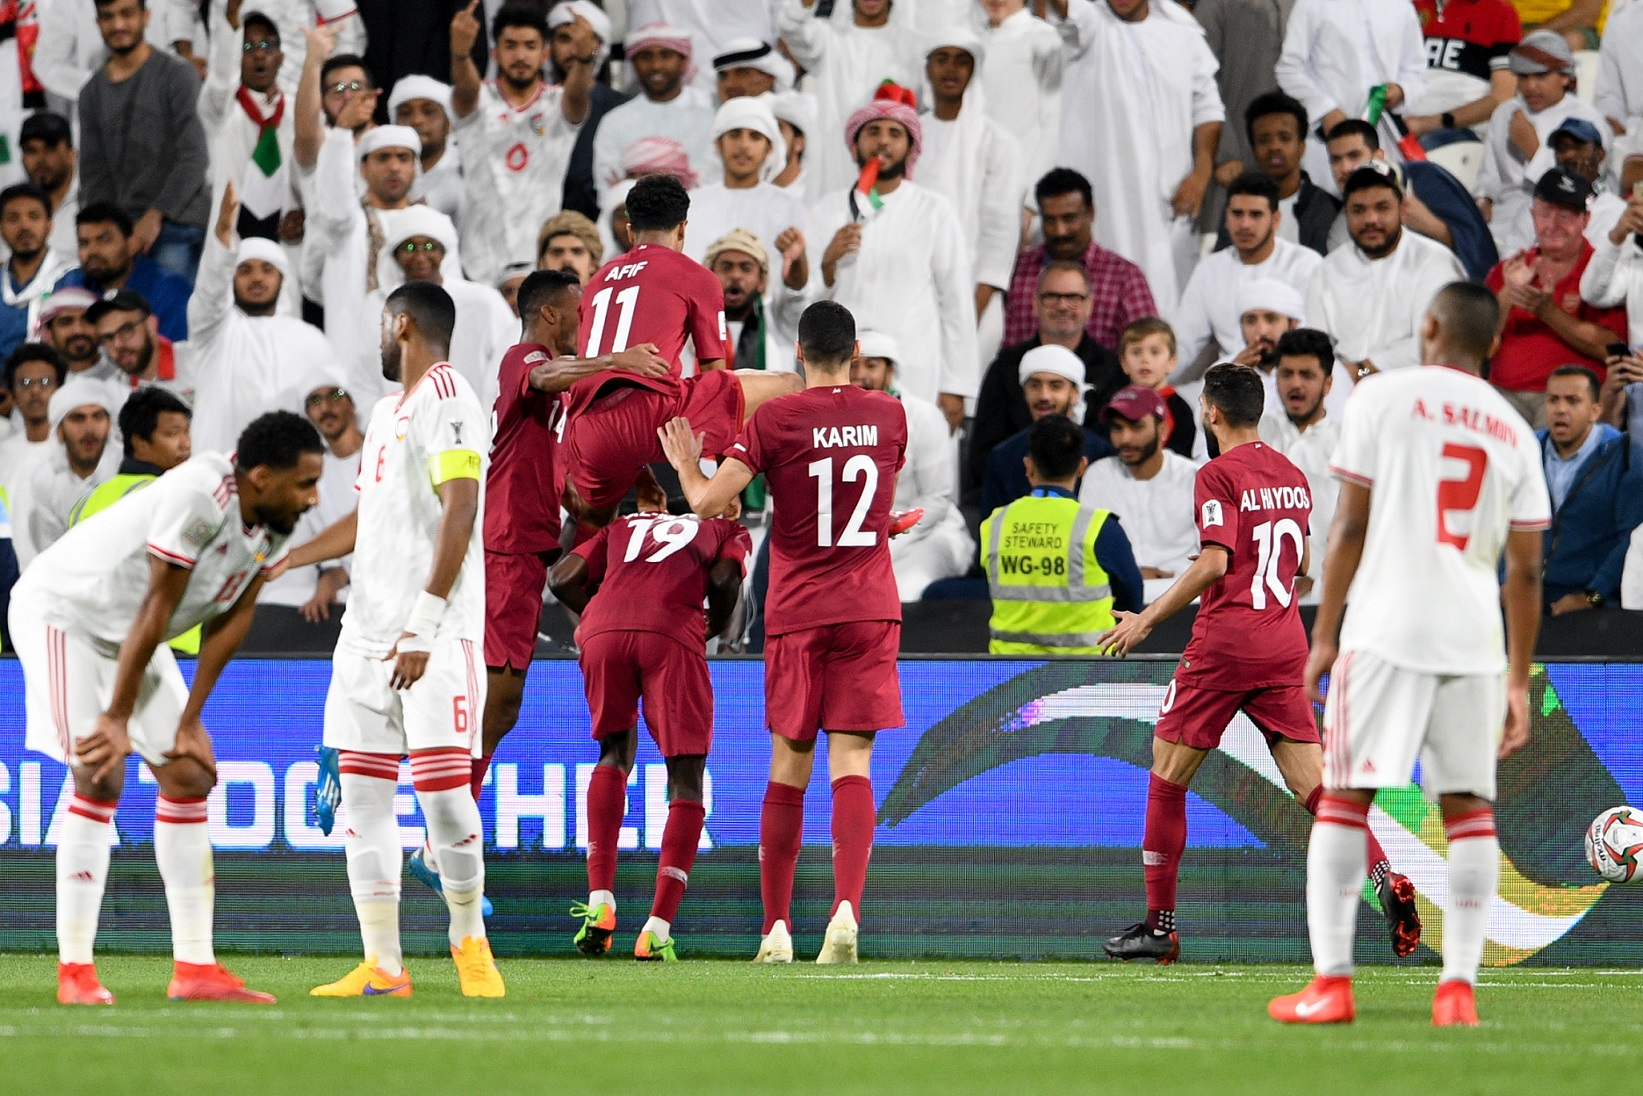 Almoez Ali and Qatar, danced in front of the home crowd (Asian Football Confederation (AFC))